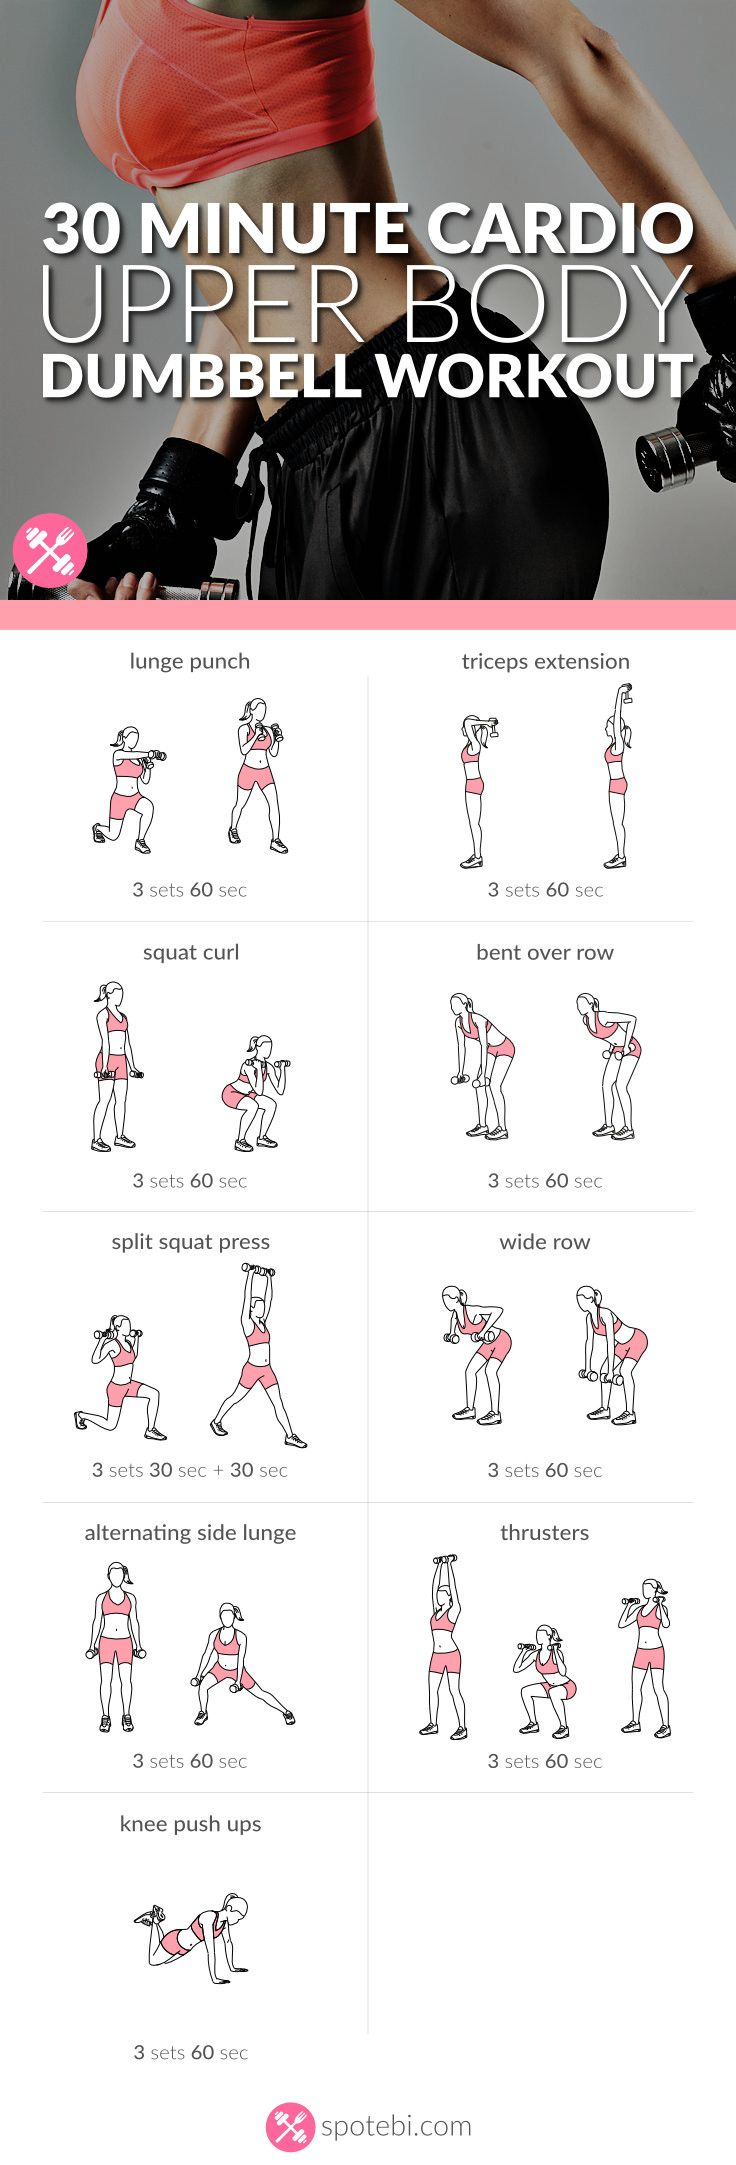 30-Minute Upper Body Cardio Workout images